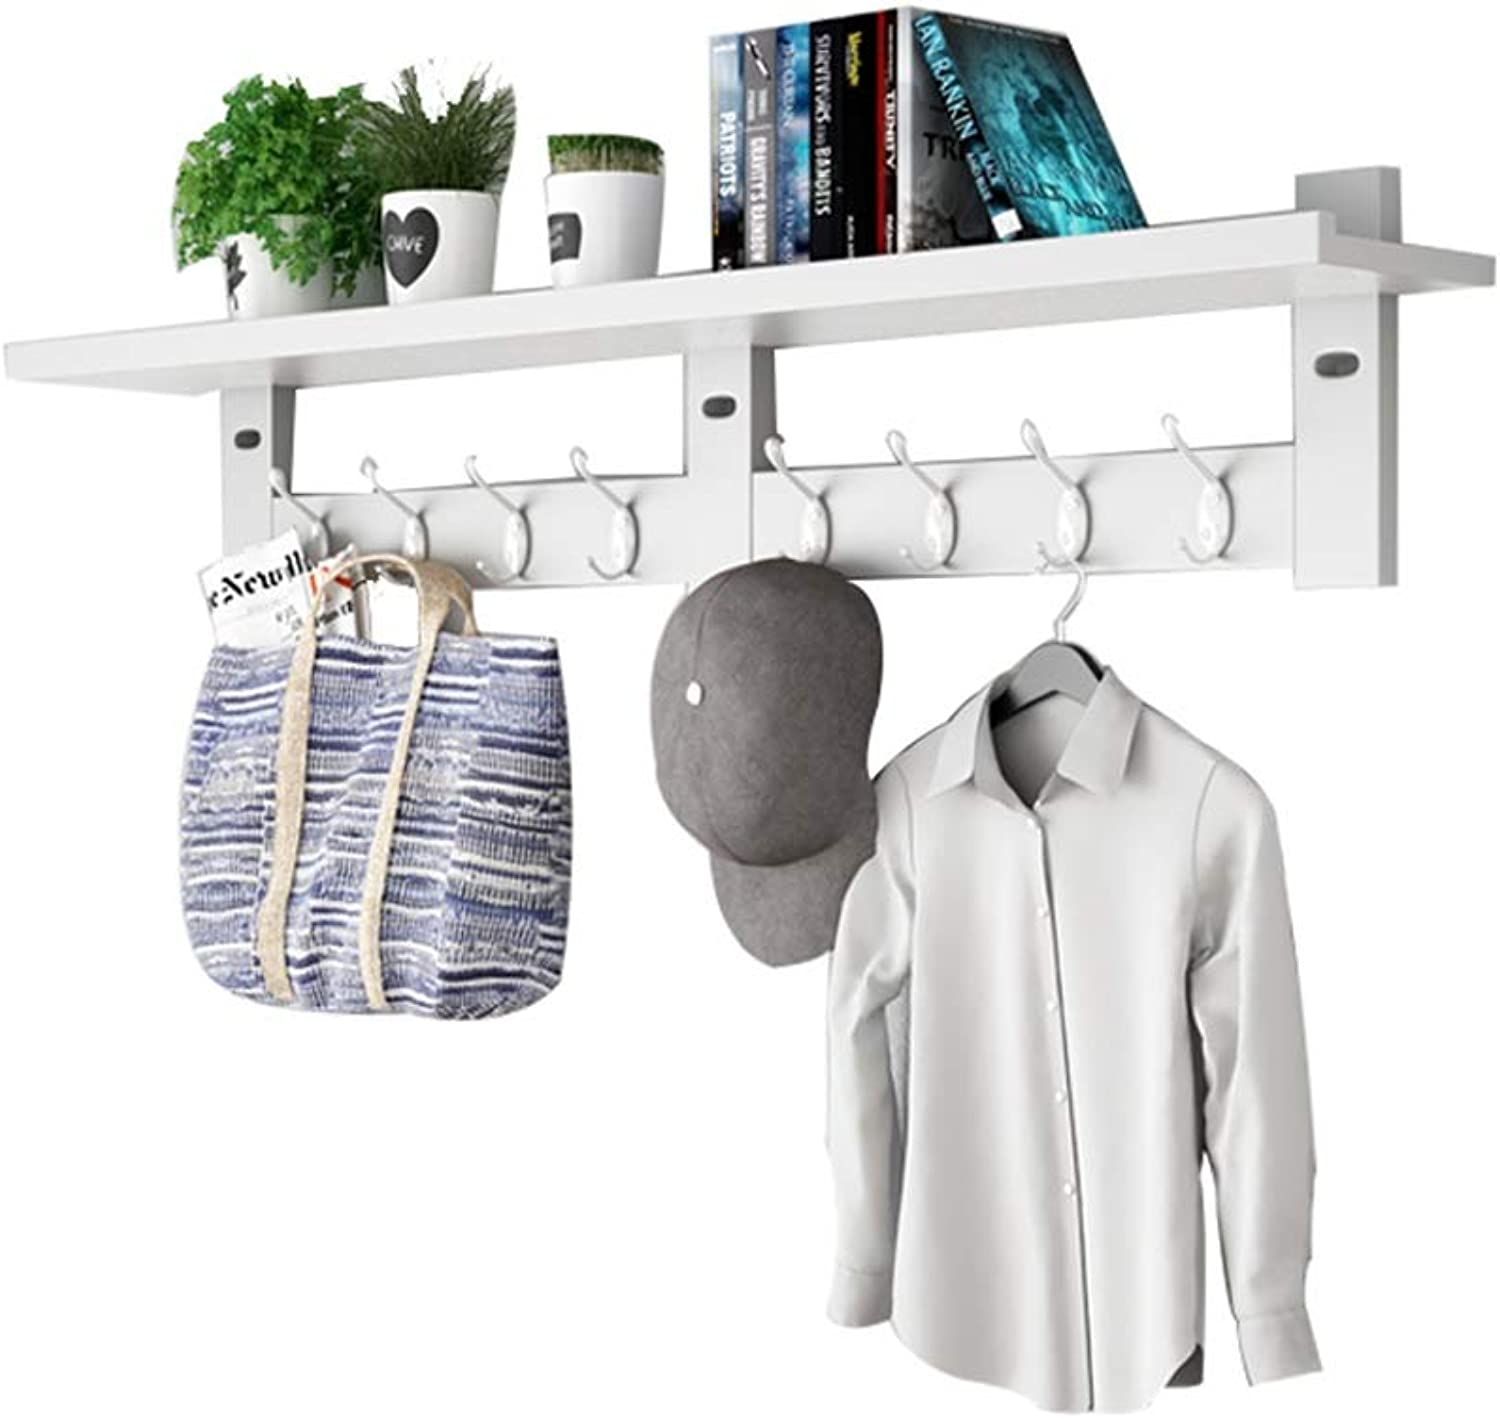 JIAYING Wall Mounted Coat Rack , Entryway Wall Shelf Wooden Organizer with Hooks Storage Rack for Hallway Living Room, Entryway Key Rack in 4 colors (color   White, Size   8 hook-100CM)